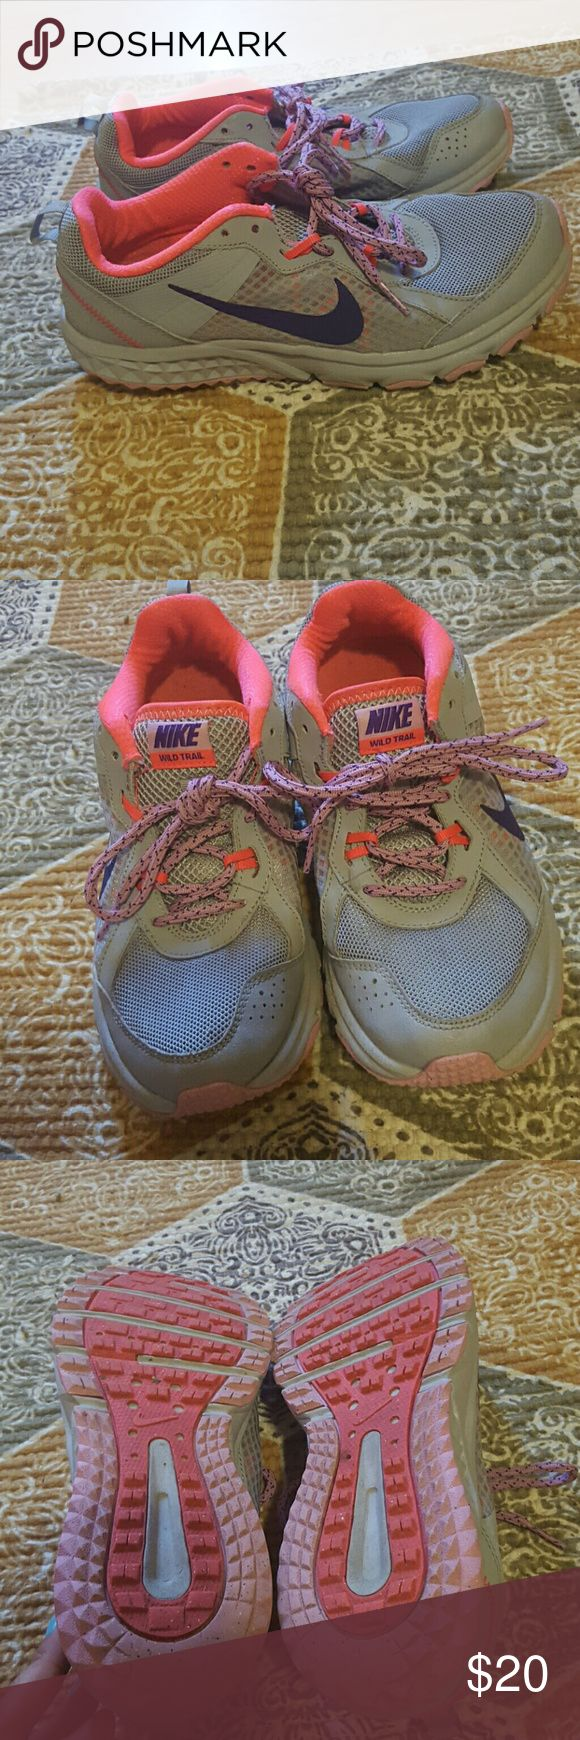 Nike wild trail shoes PRICE FIRM Nike purple grey shoes good condition Nike Shoes Athletic Shoes